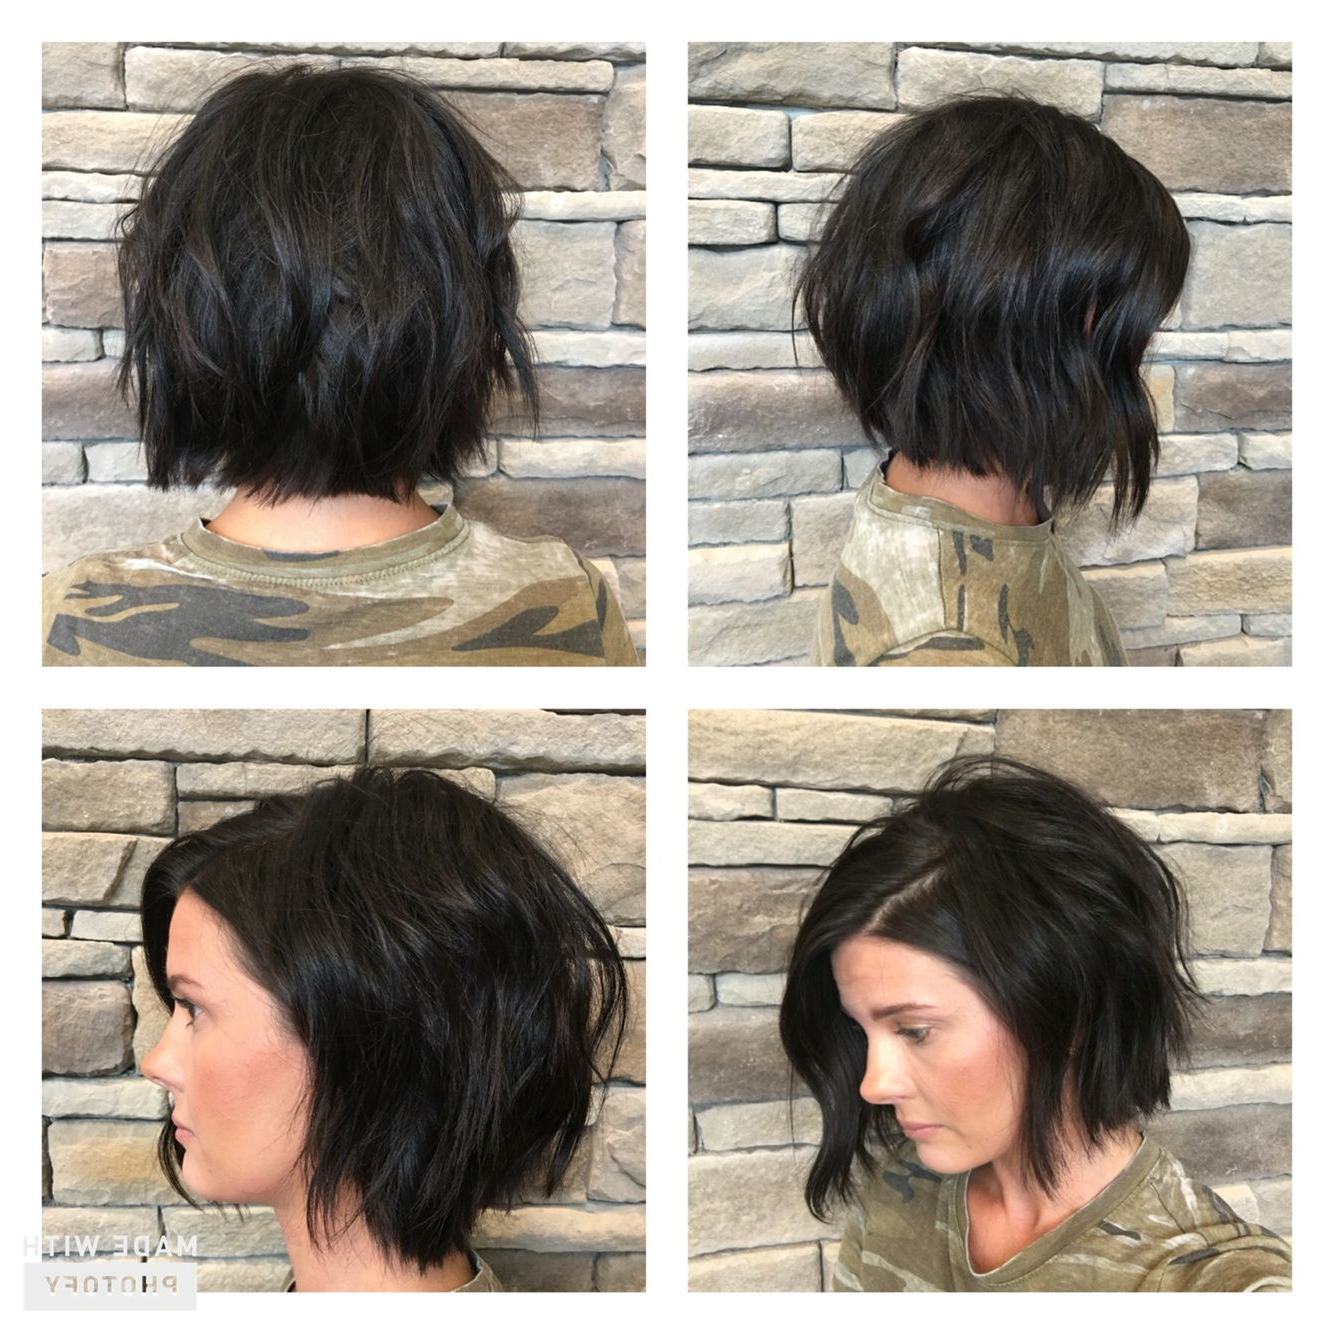 Texturized Modern Bob #studio603 | Short Styles In 2018 | Pinterest Throughout Modern Chocolate Bob Haircuts (View 4 of 20)